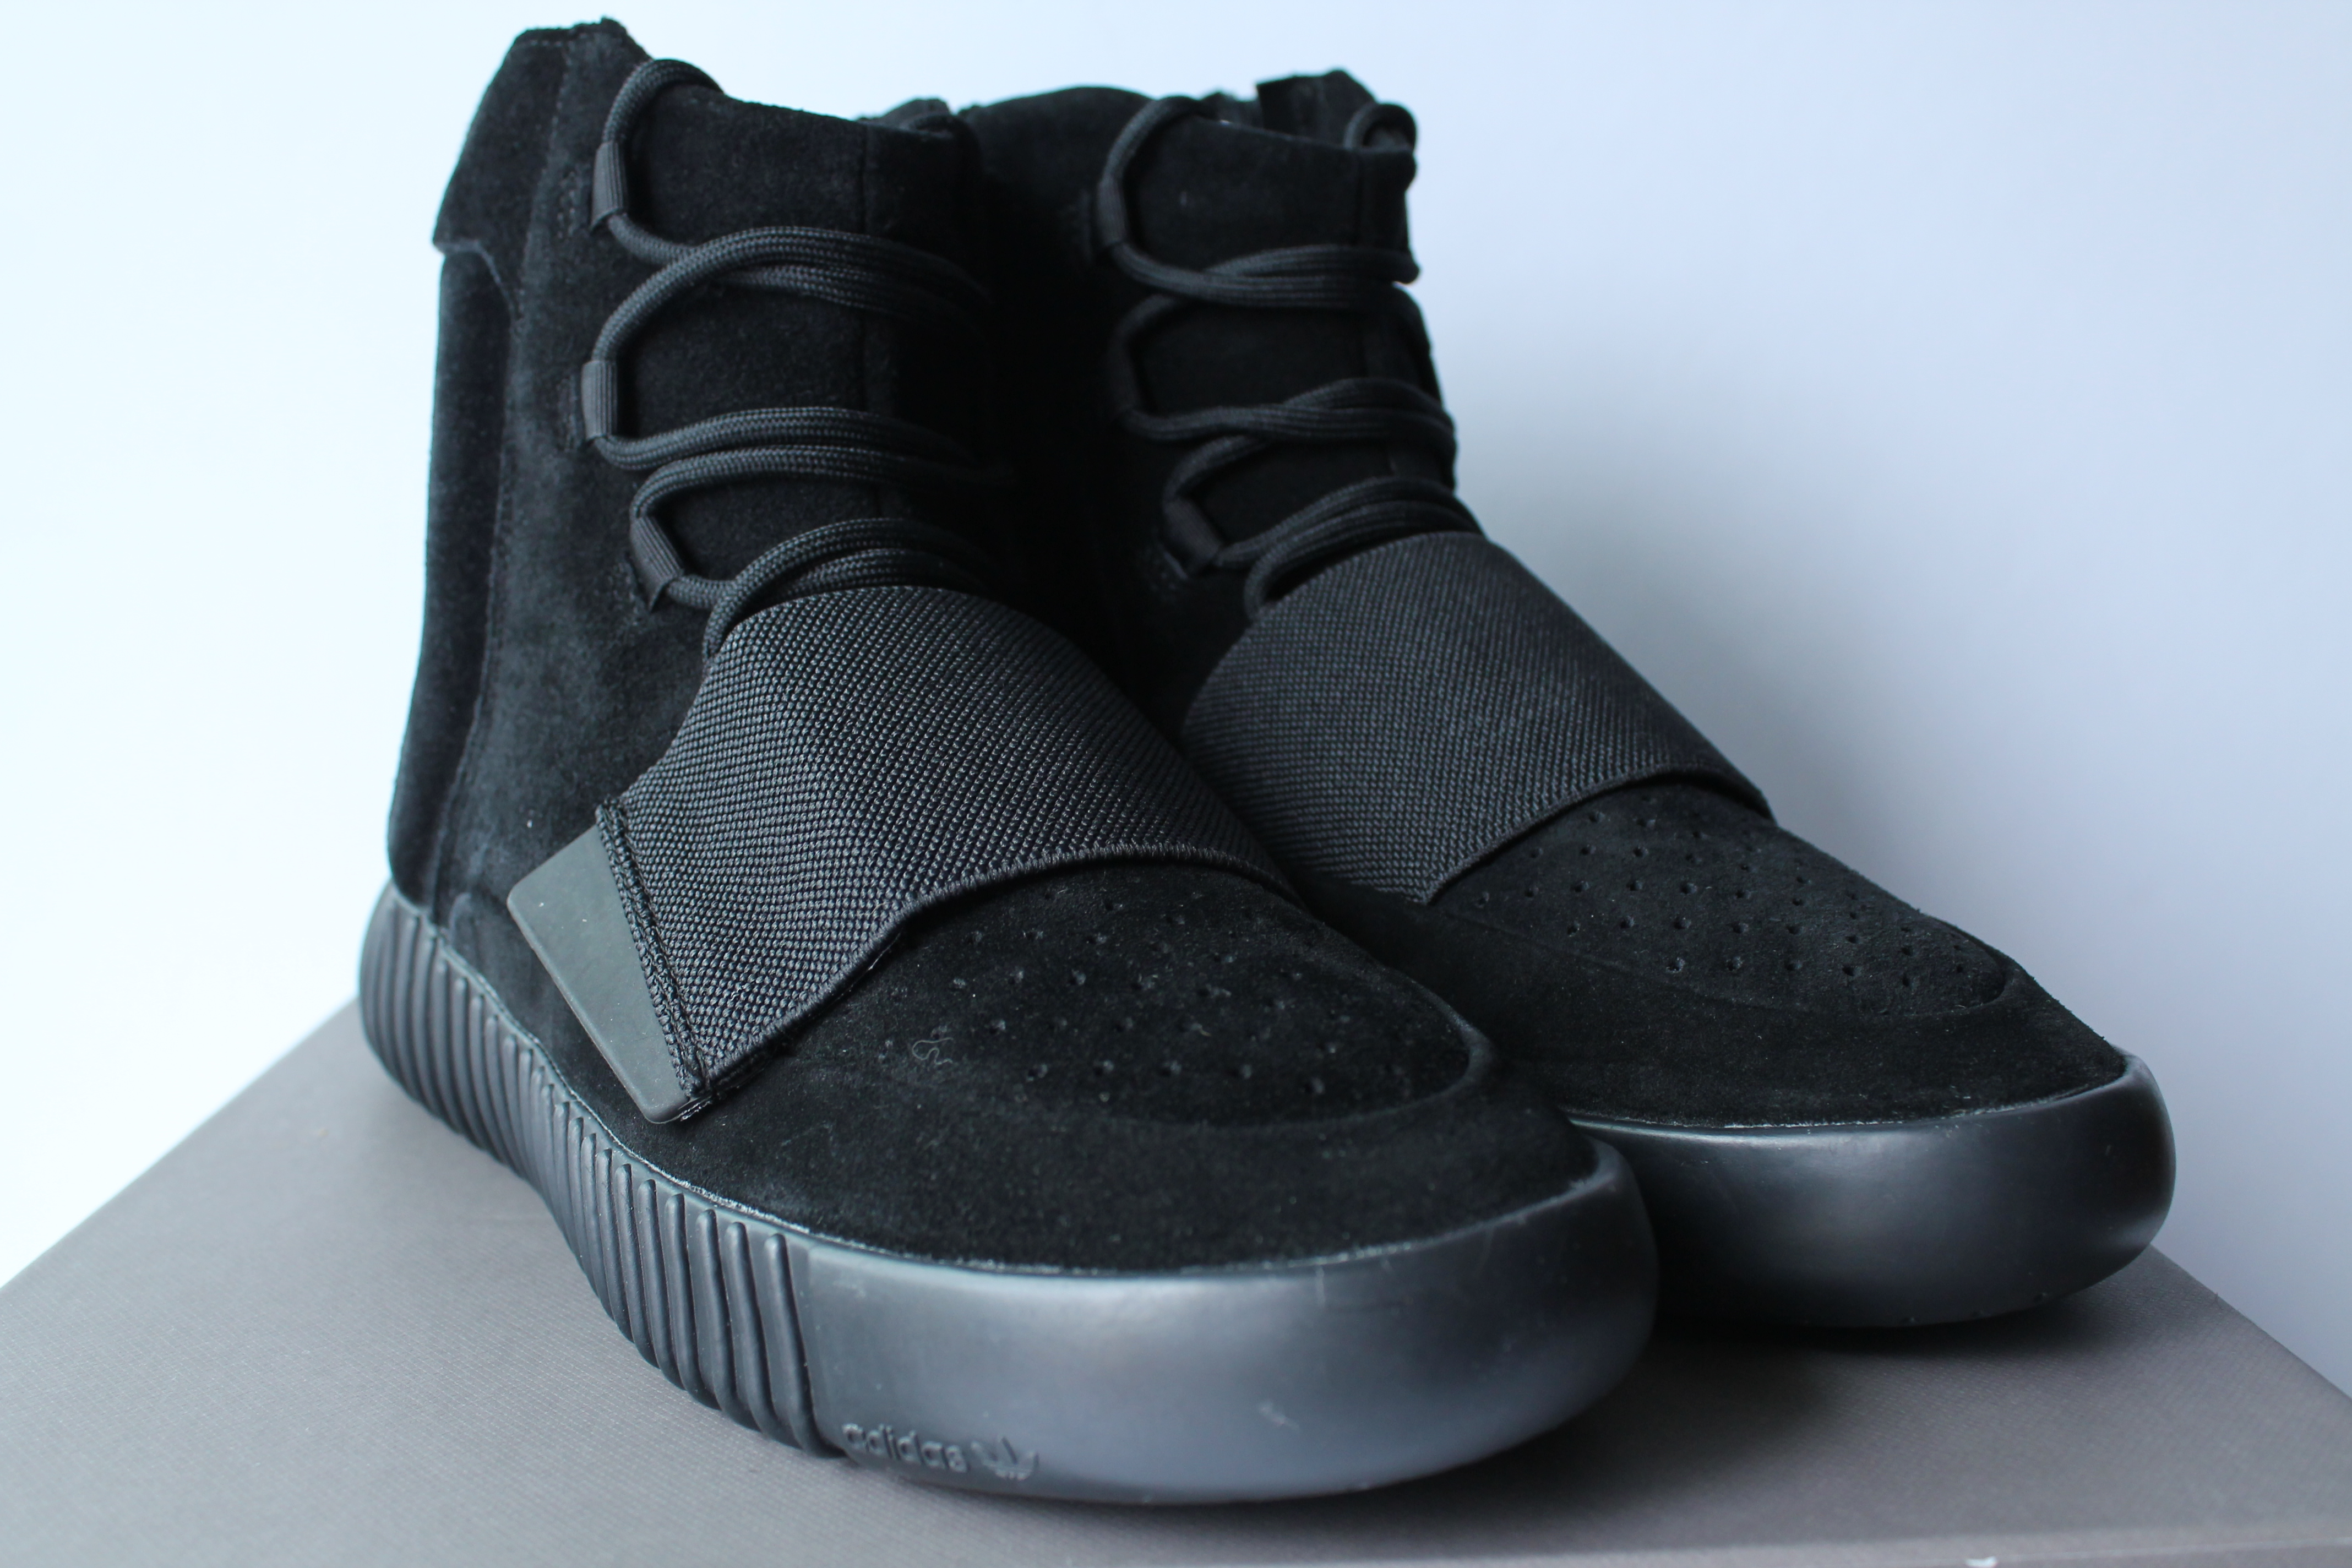 Adidas Yeezy Boost 750 Pirate Black